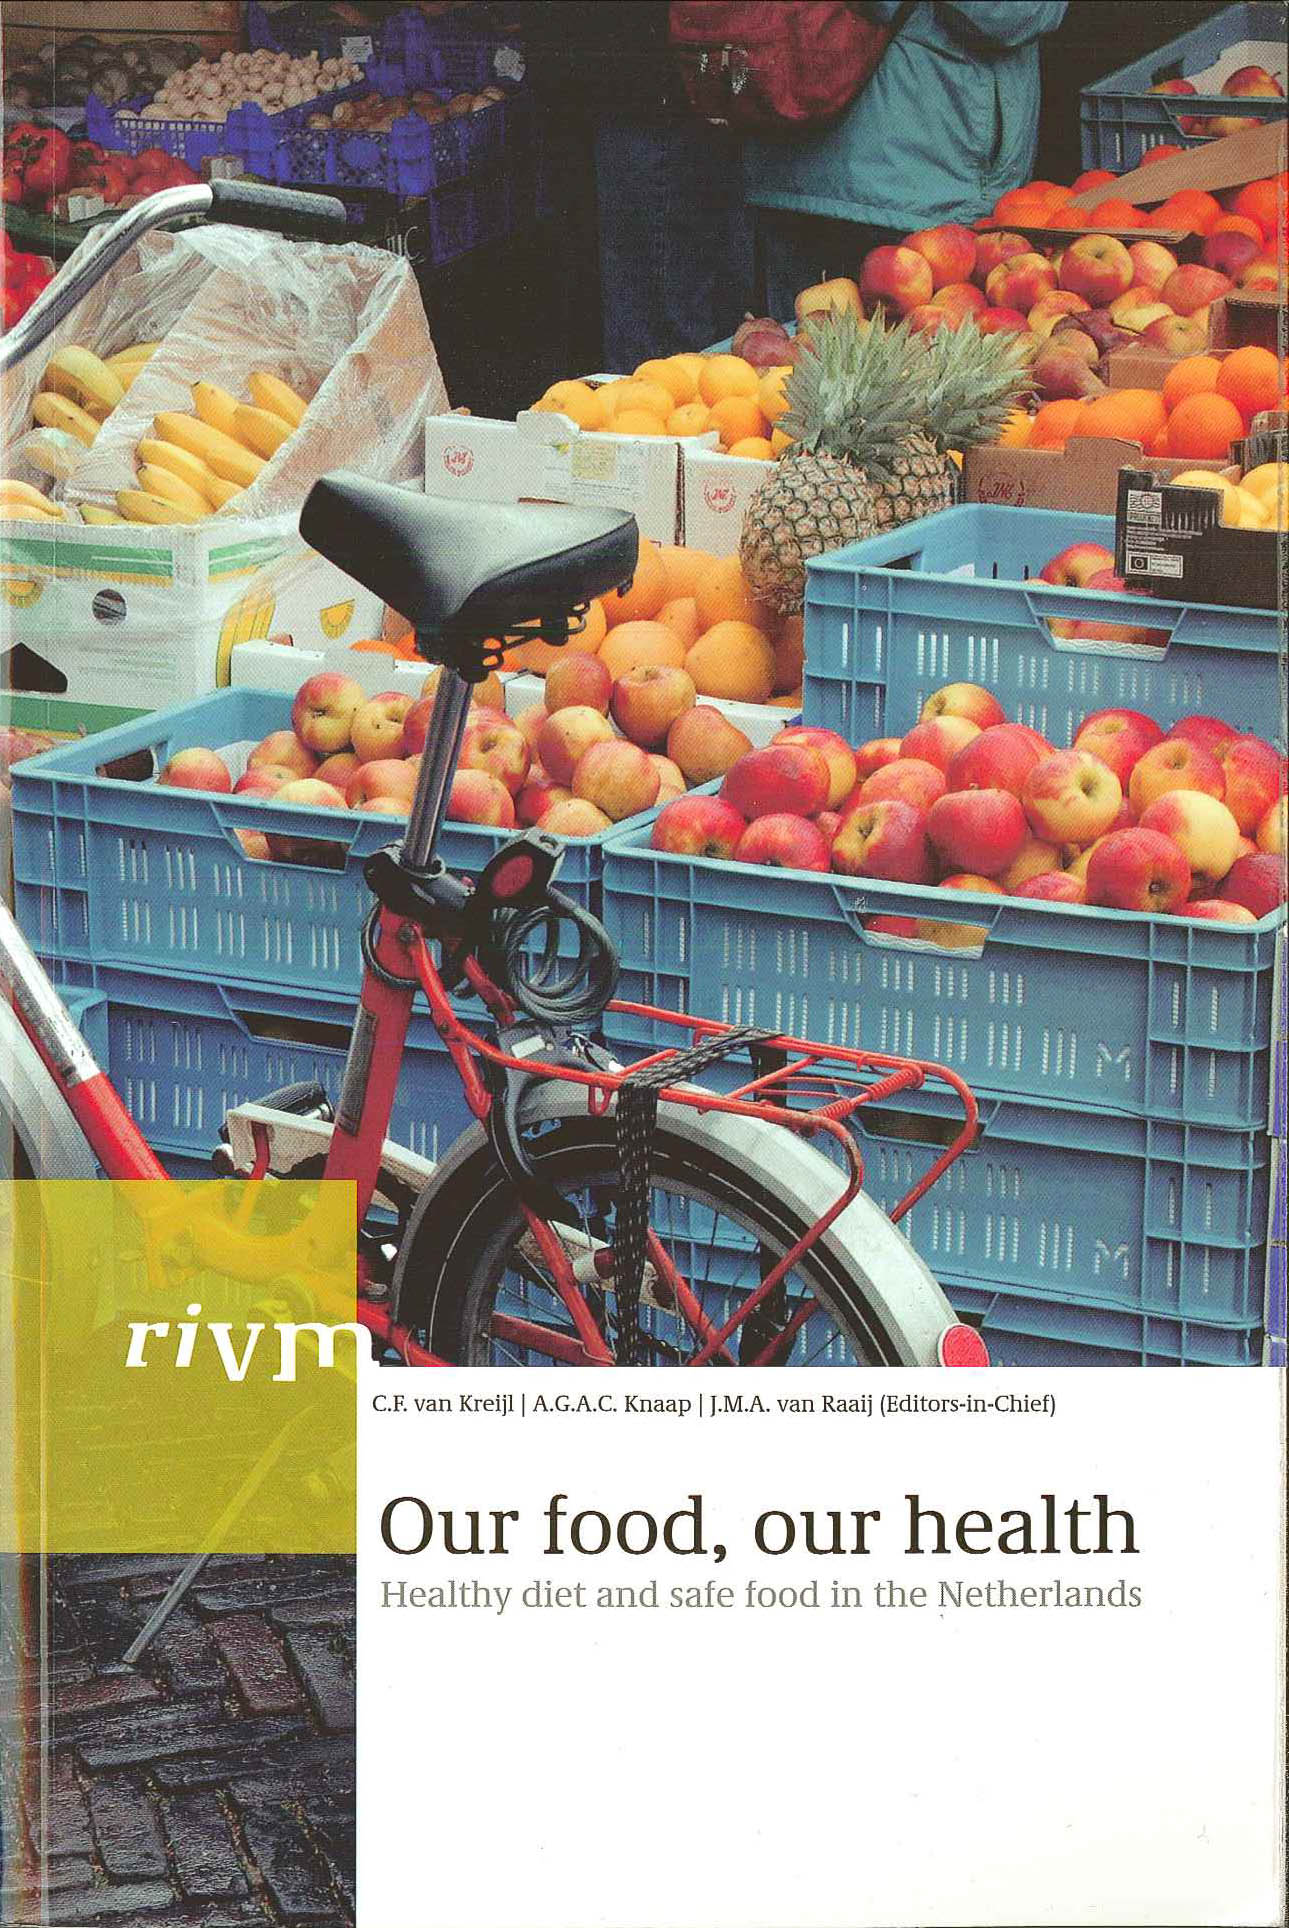 Our food, our health. Healhty diet and safe food in the Netherlands.